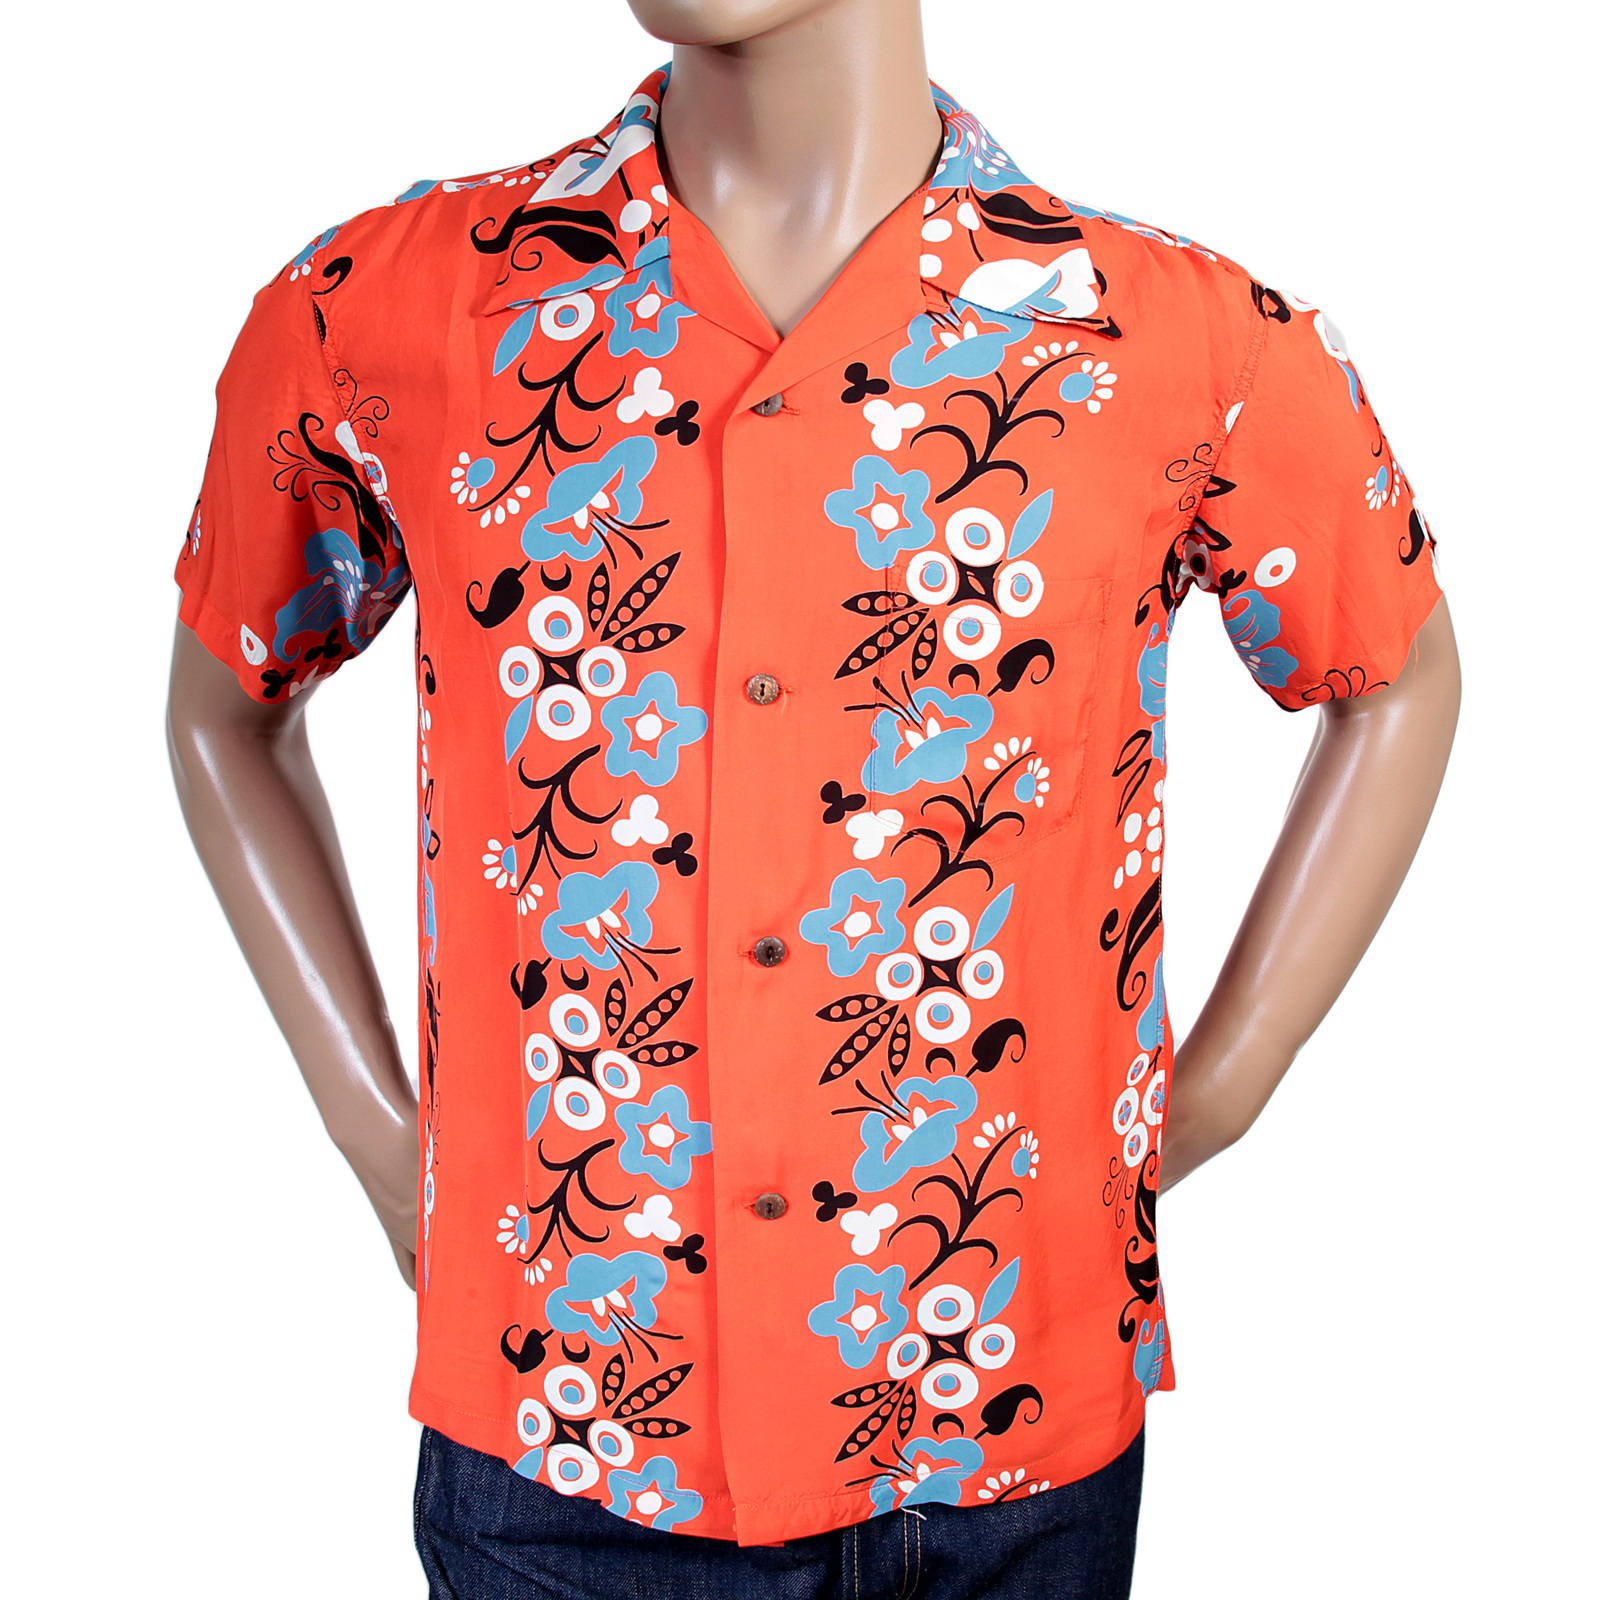 Sunsurf Hawaiian Floral Print Shirt With Cuban Collar